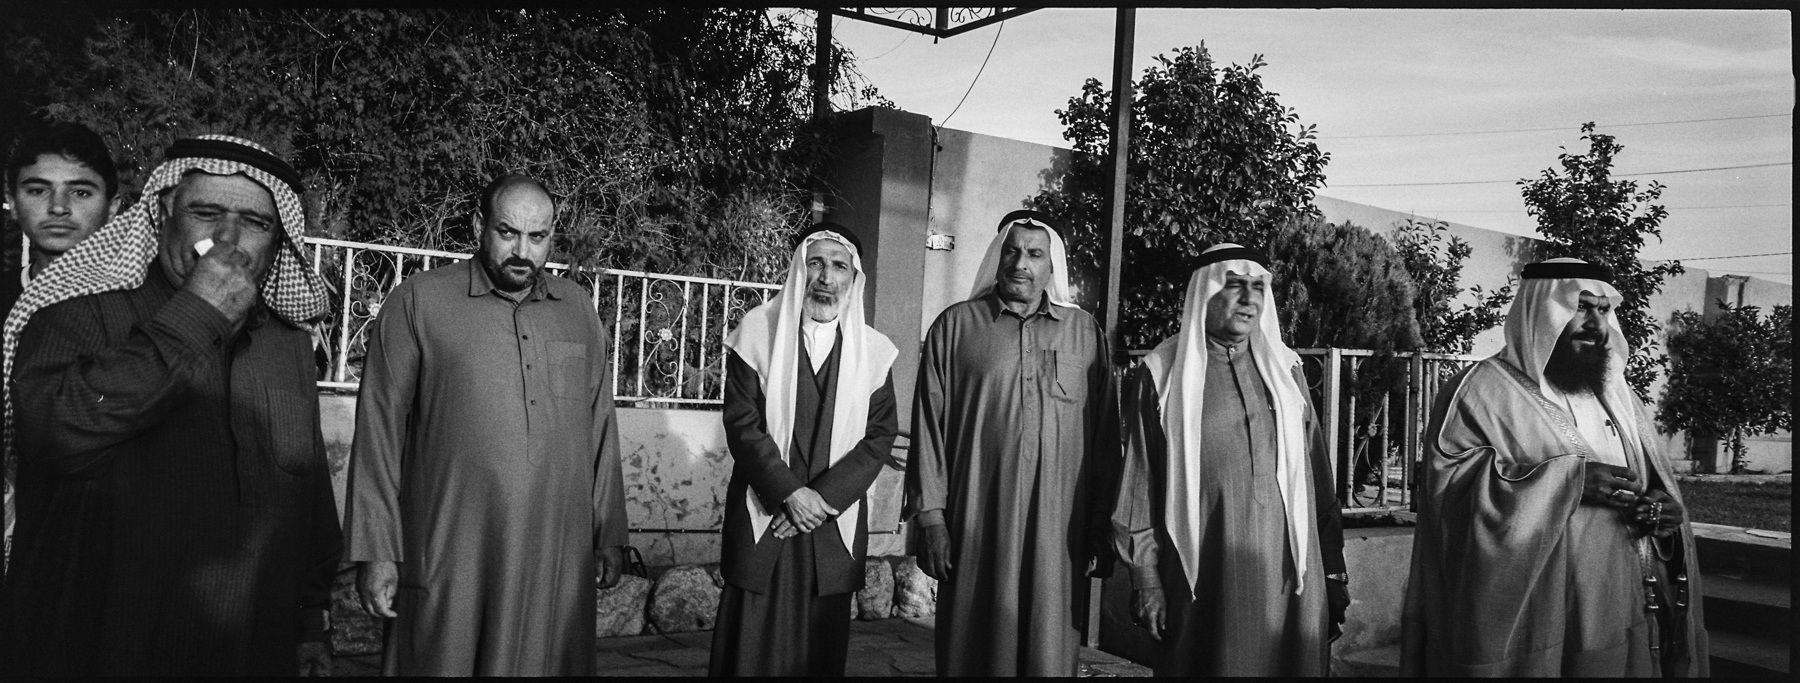 Sunni Tribal Leaders. Mosul, 2017.